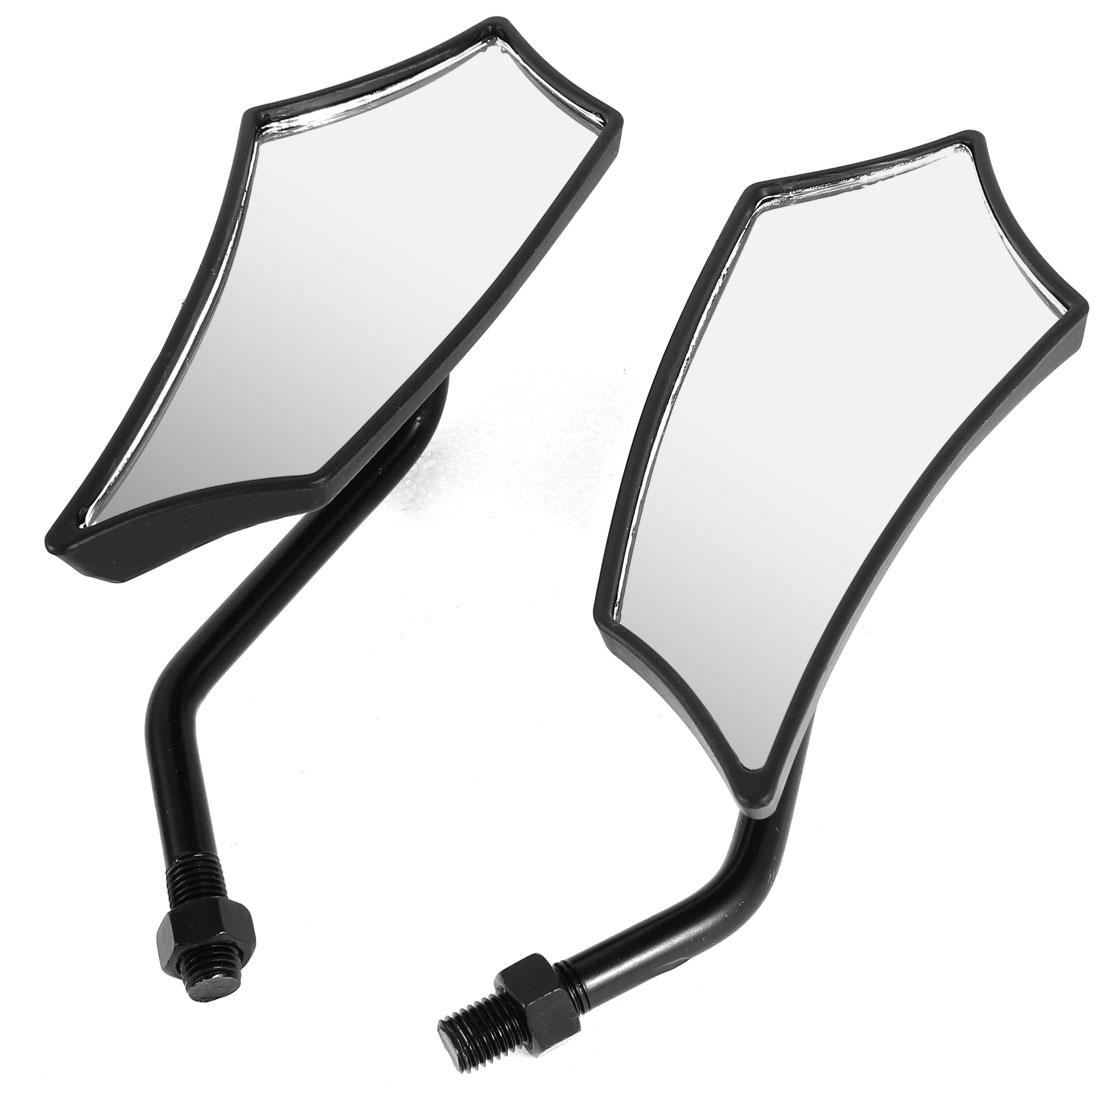 2 Pcs Black Plastic Shell Rearview Mirrors for Motorcycle